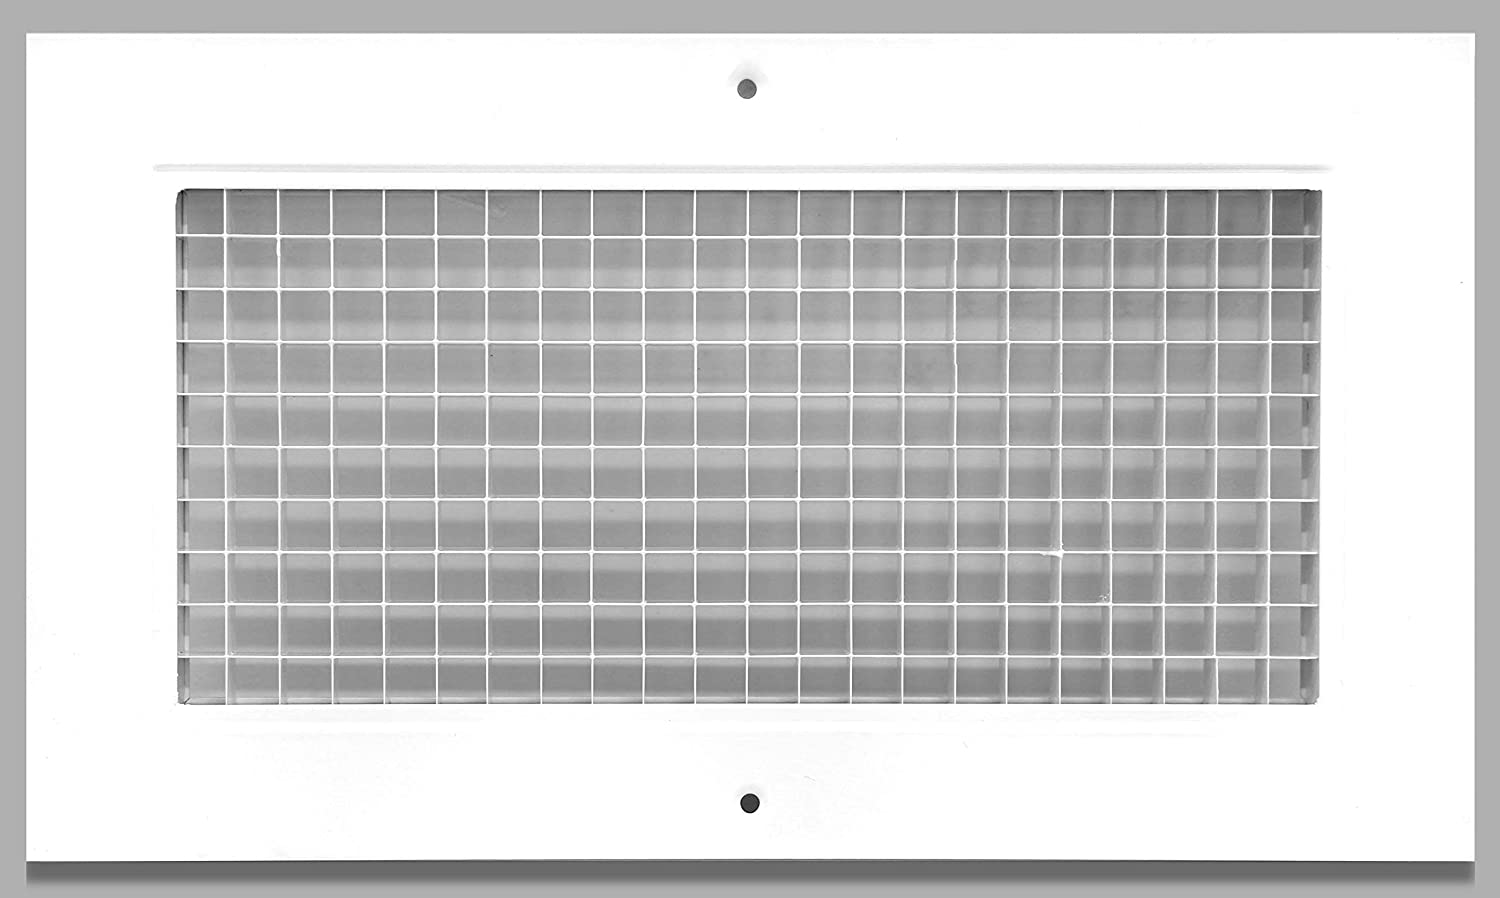 """6"""" x 12"""" Cube Core Eggcrate Return Air Grille - Aluminum Rust Proof - HVAC Vent Duct Cover - White [Outer Dimensions: 7.75 X 13.75]"""